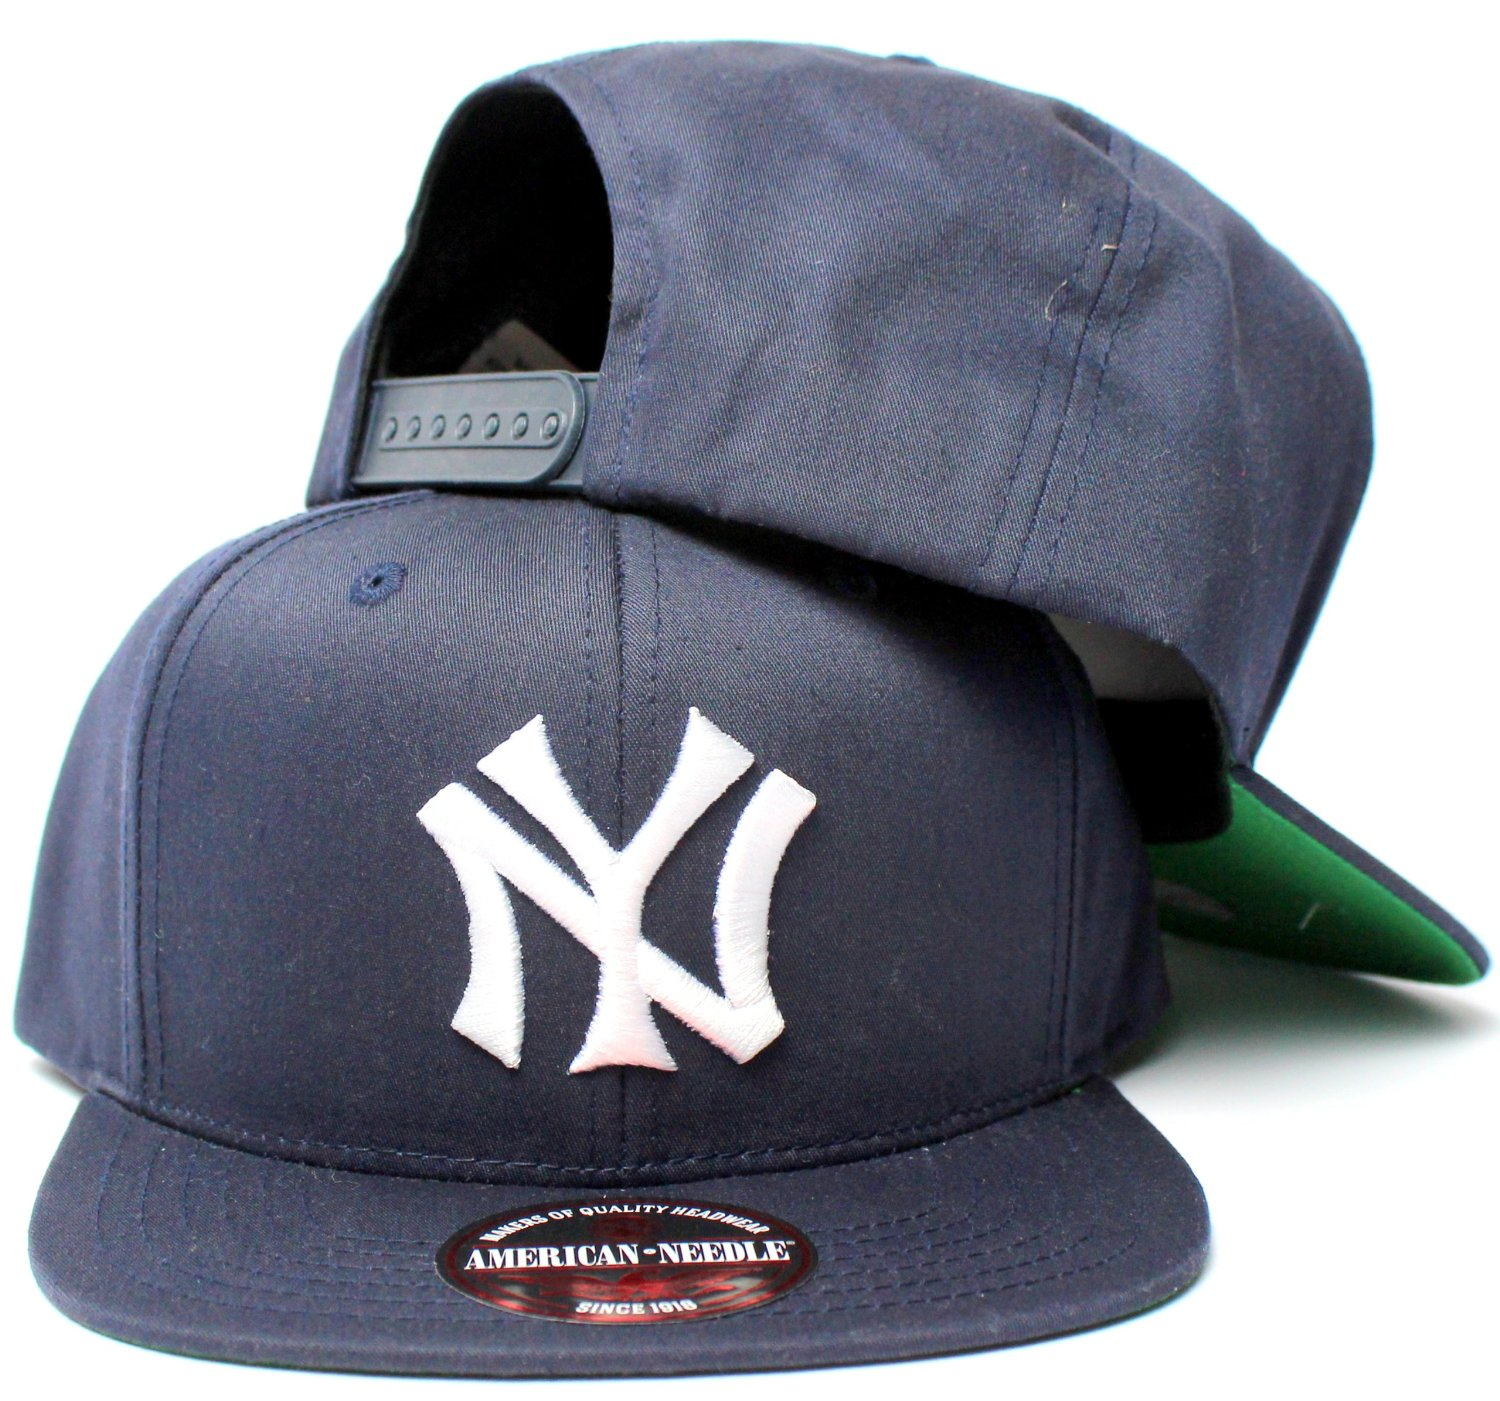 542aa05ff48 Get Quotations · New York Yankees MLB American Needle Retro 1922 Adjustable Snapback  Cap Navy